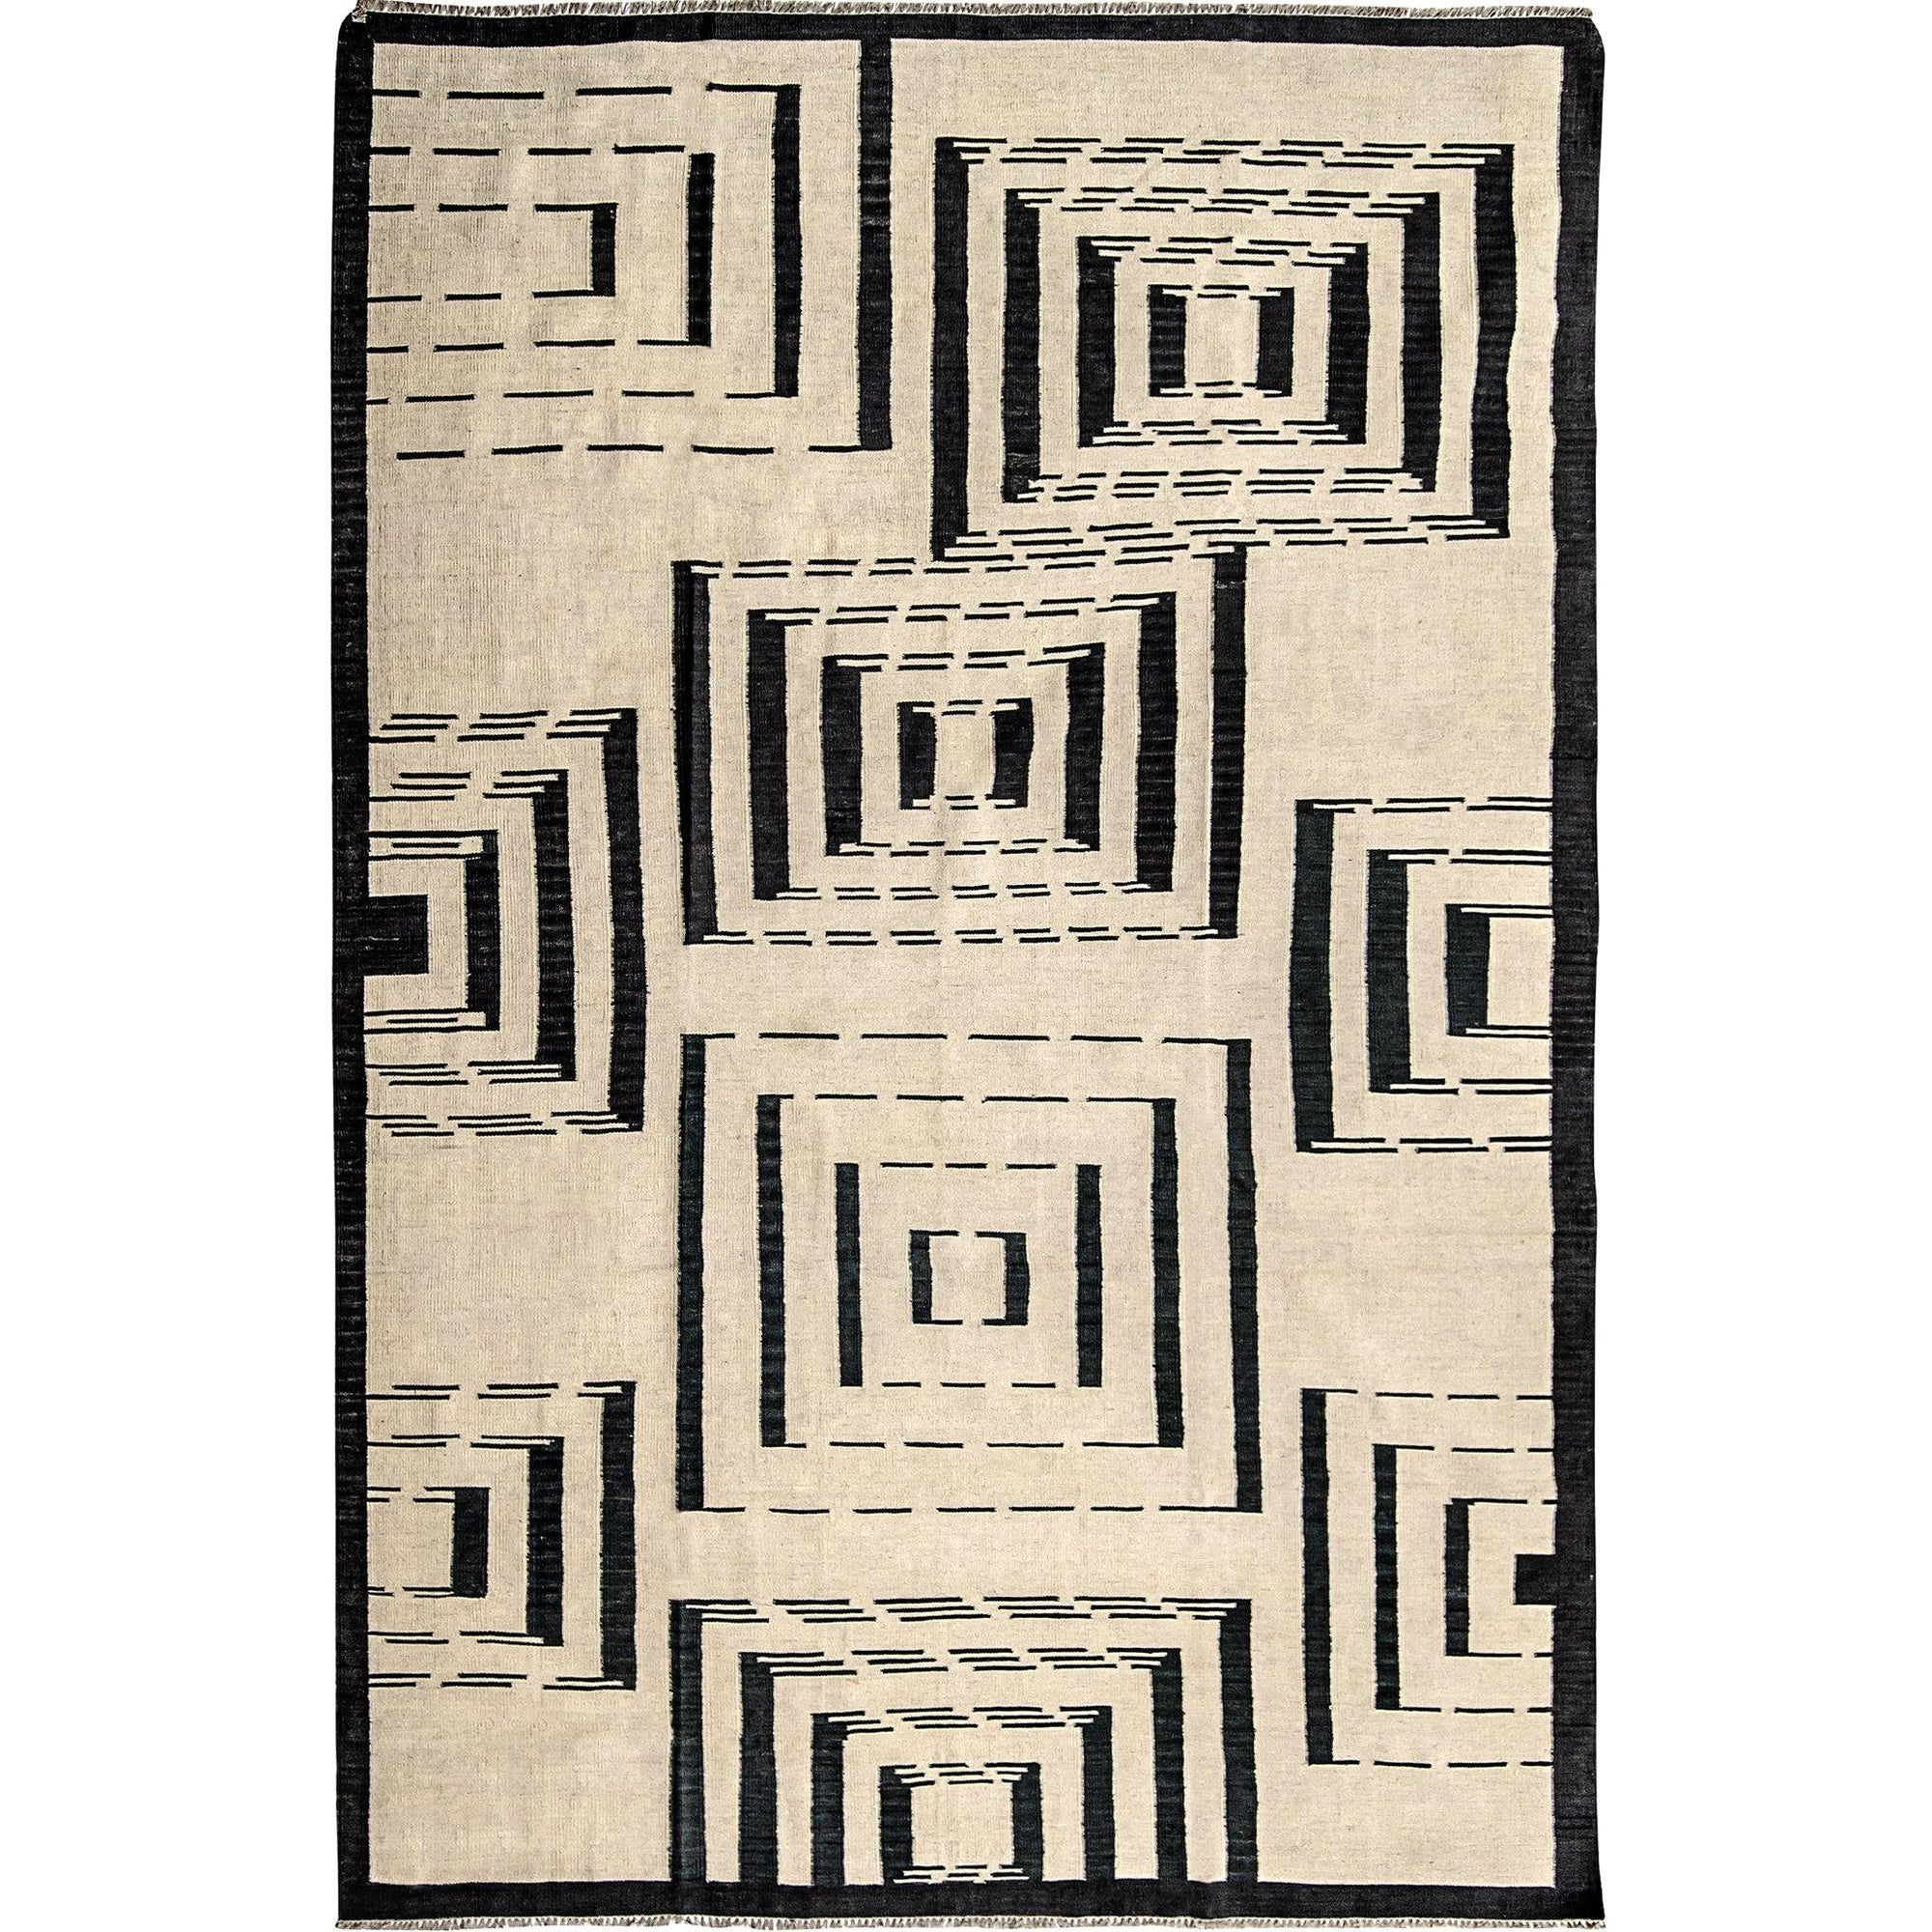 Modern Hand-woven 100% Wool Chobi Kilim Rug 210cm x 301cm Persian-Rug | House-of-Haghi | NewMarket | Auckland | NZ | Handmade Persian Rugs | Hand Knotted Persian Rugs